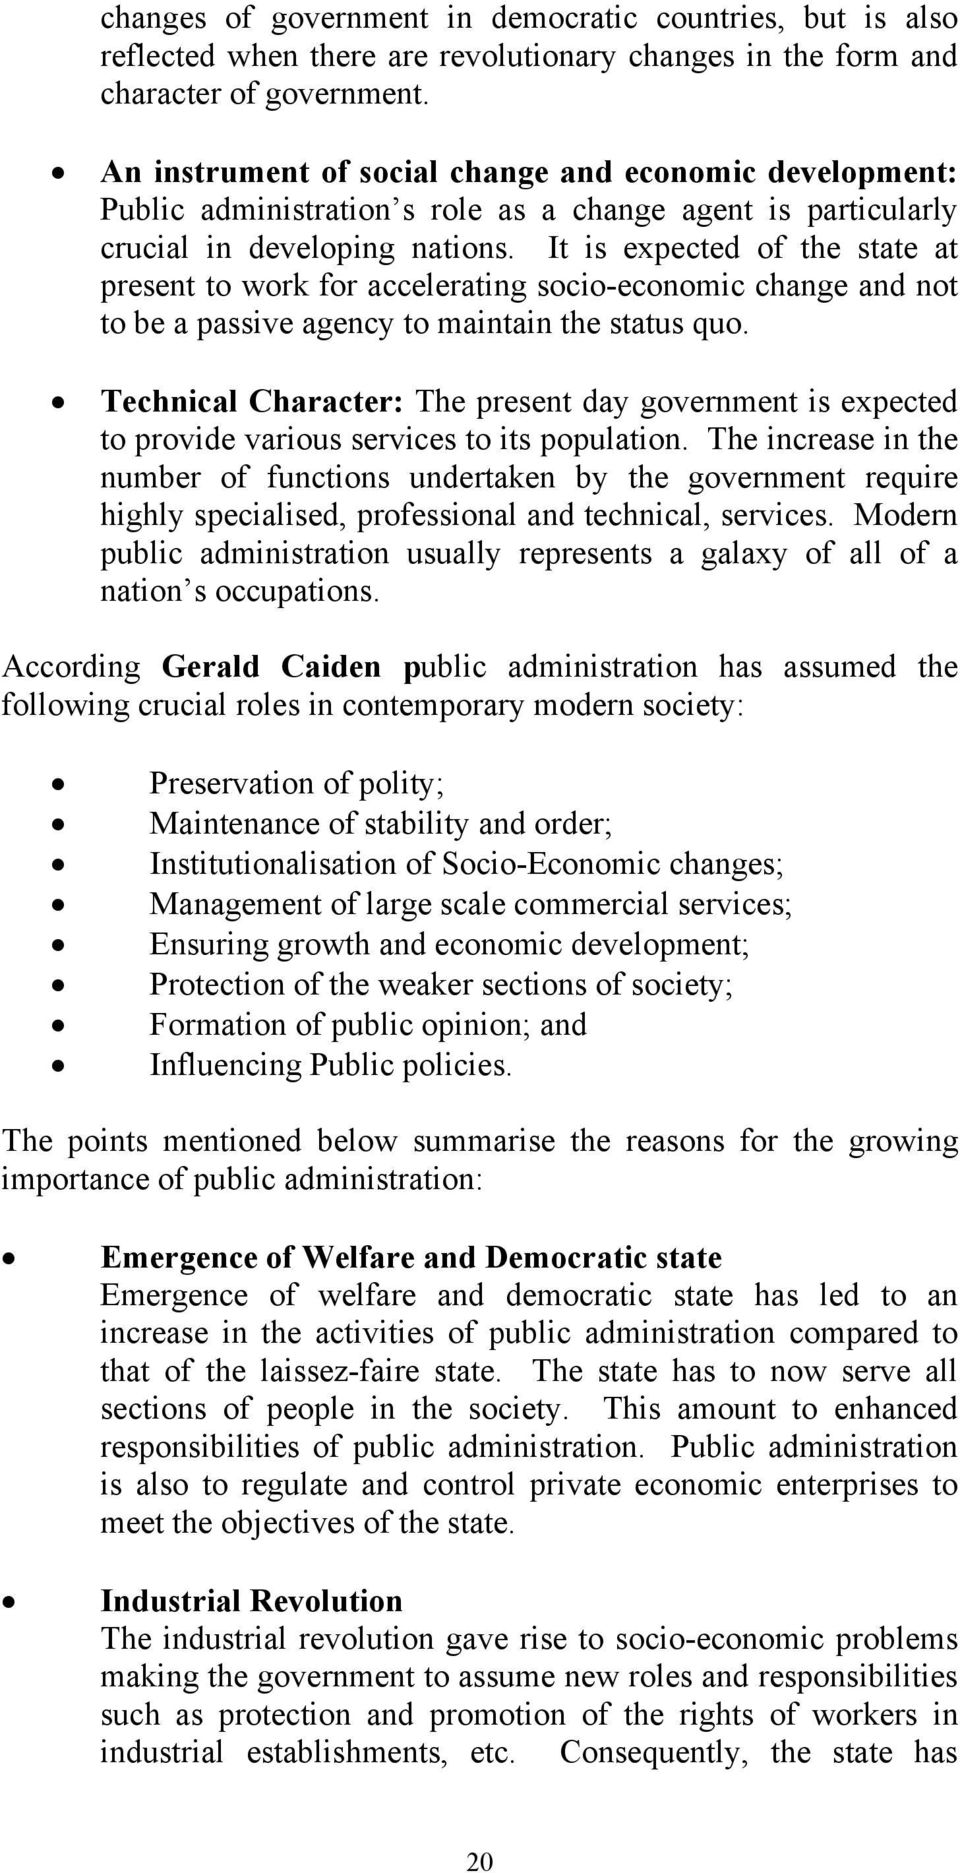 importance of public administration in modern society